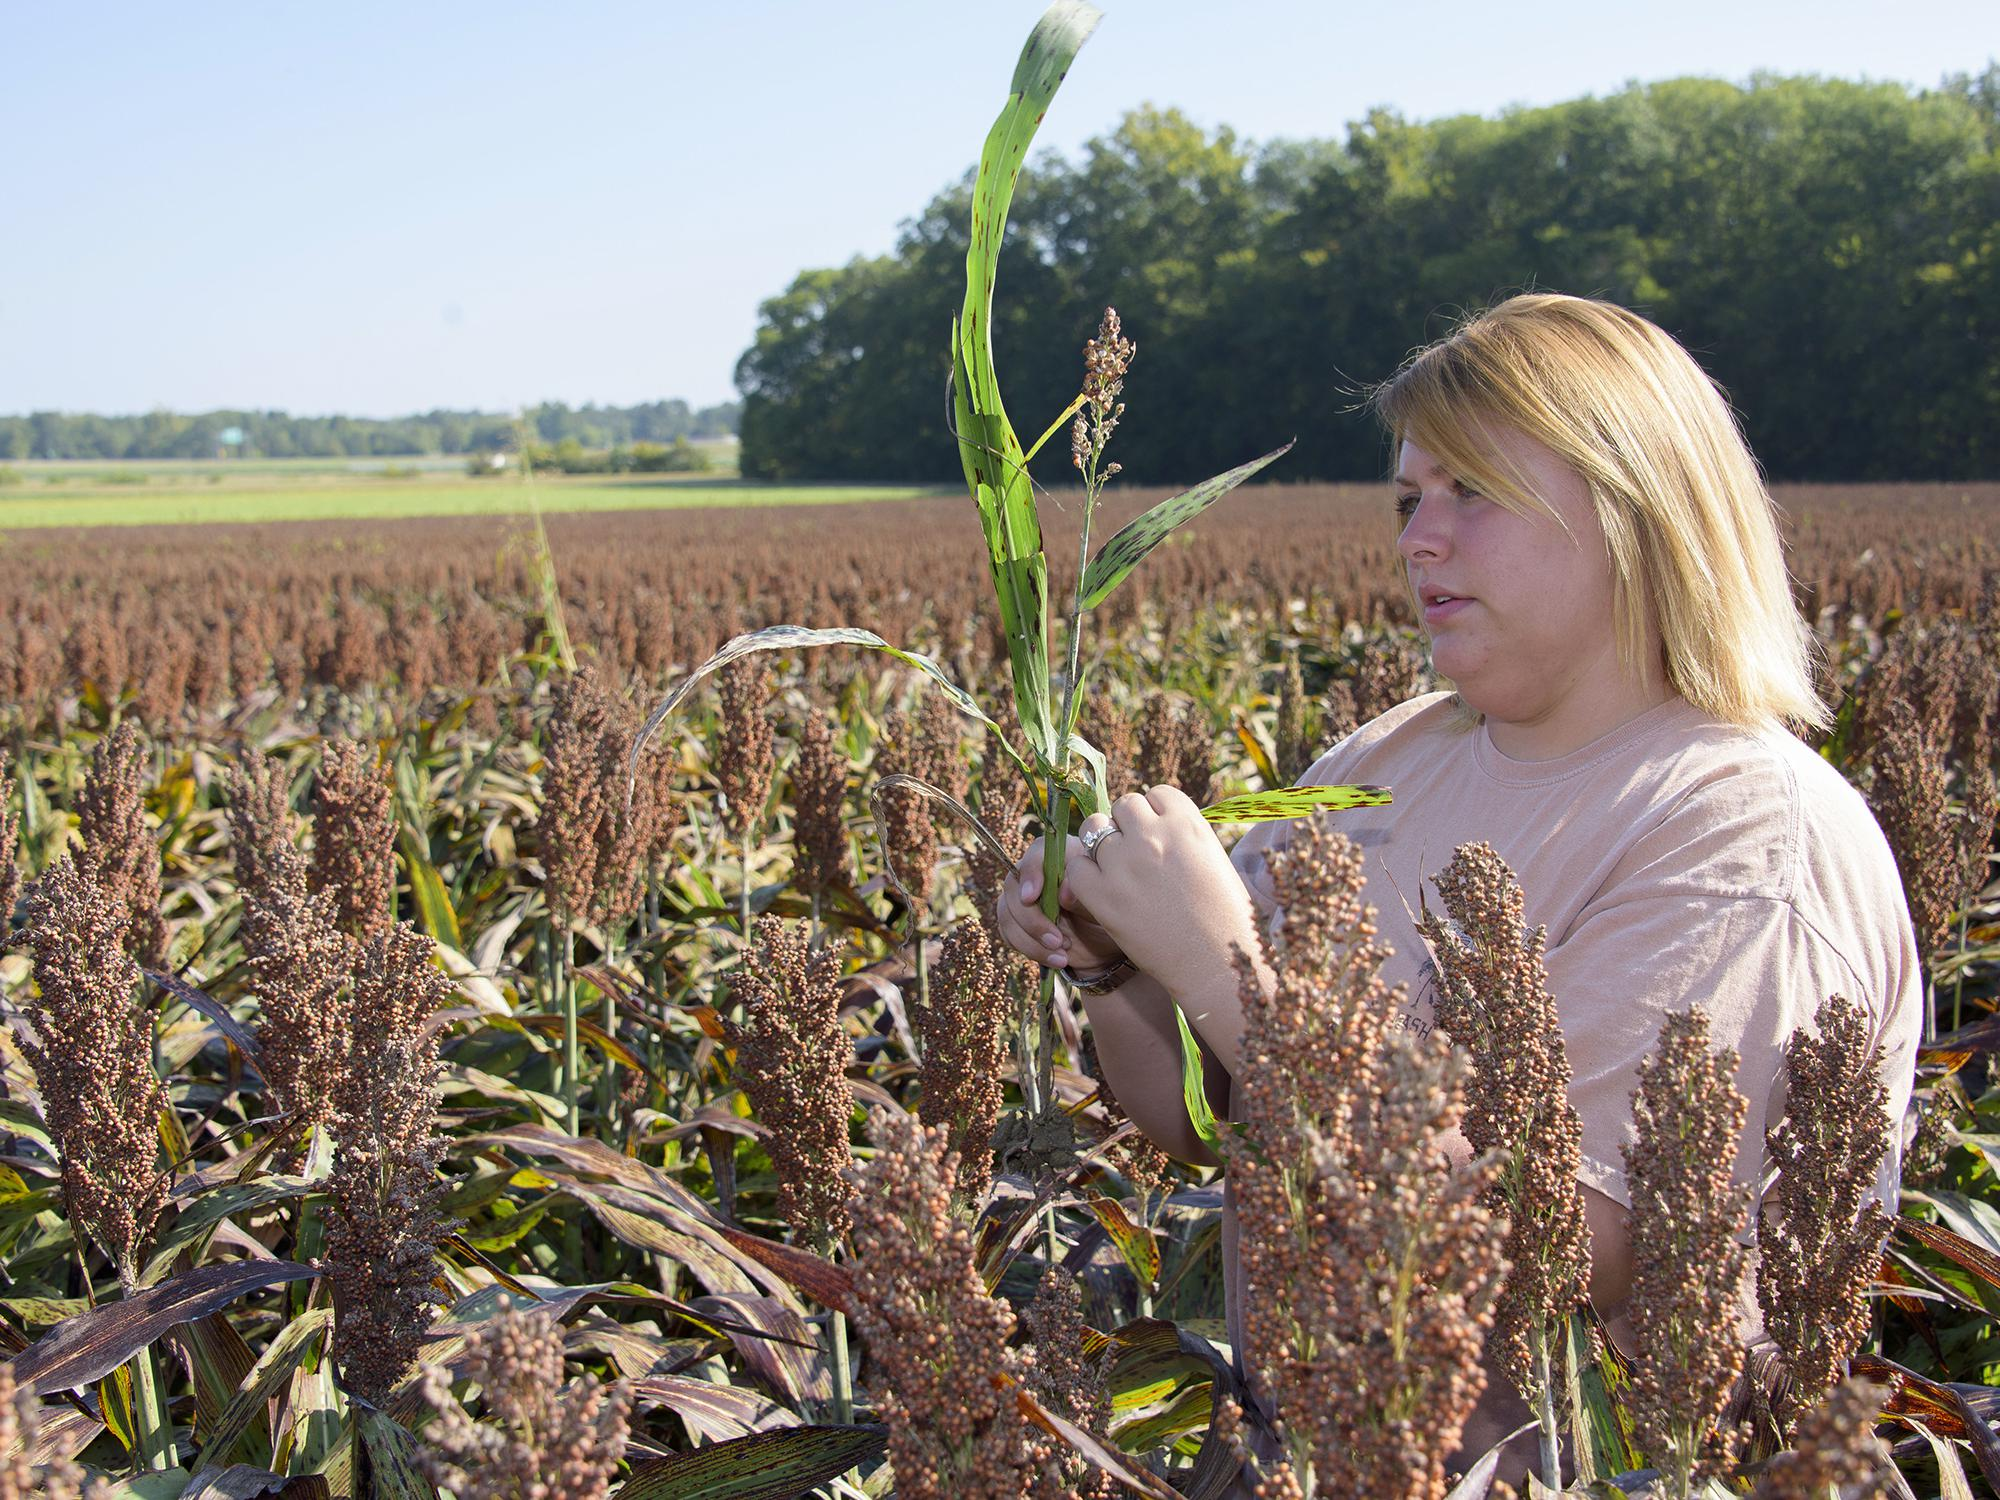 Brittany Lipsey, a Mississippi State University graduate student from Louisville, Mississippi, is researching management techniques that can be used to combat sugarcane aphids, helping sorghum farmers have a sustainable future with the crop. (Photo by MSU Extension Service/Kevin Hudson)